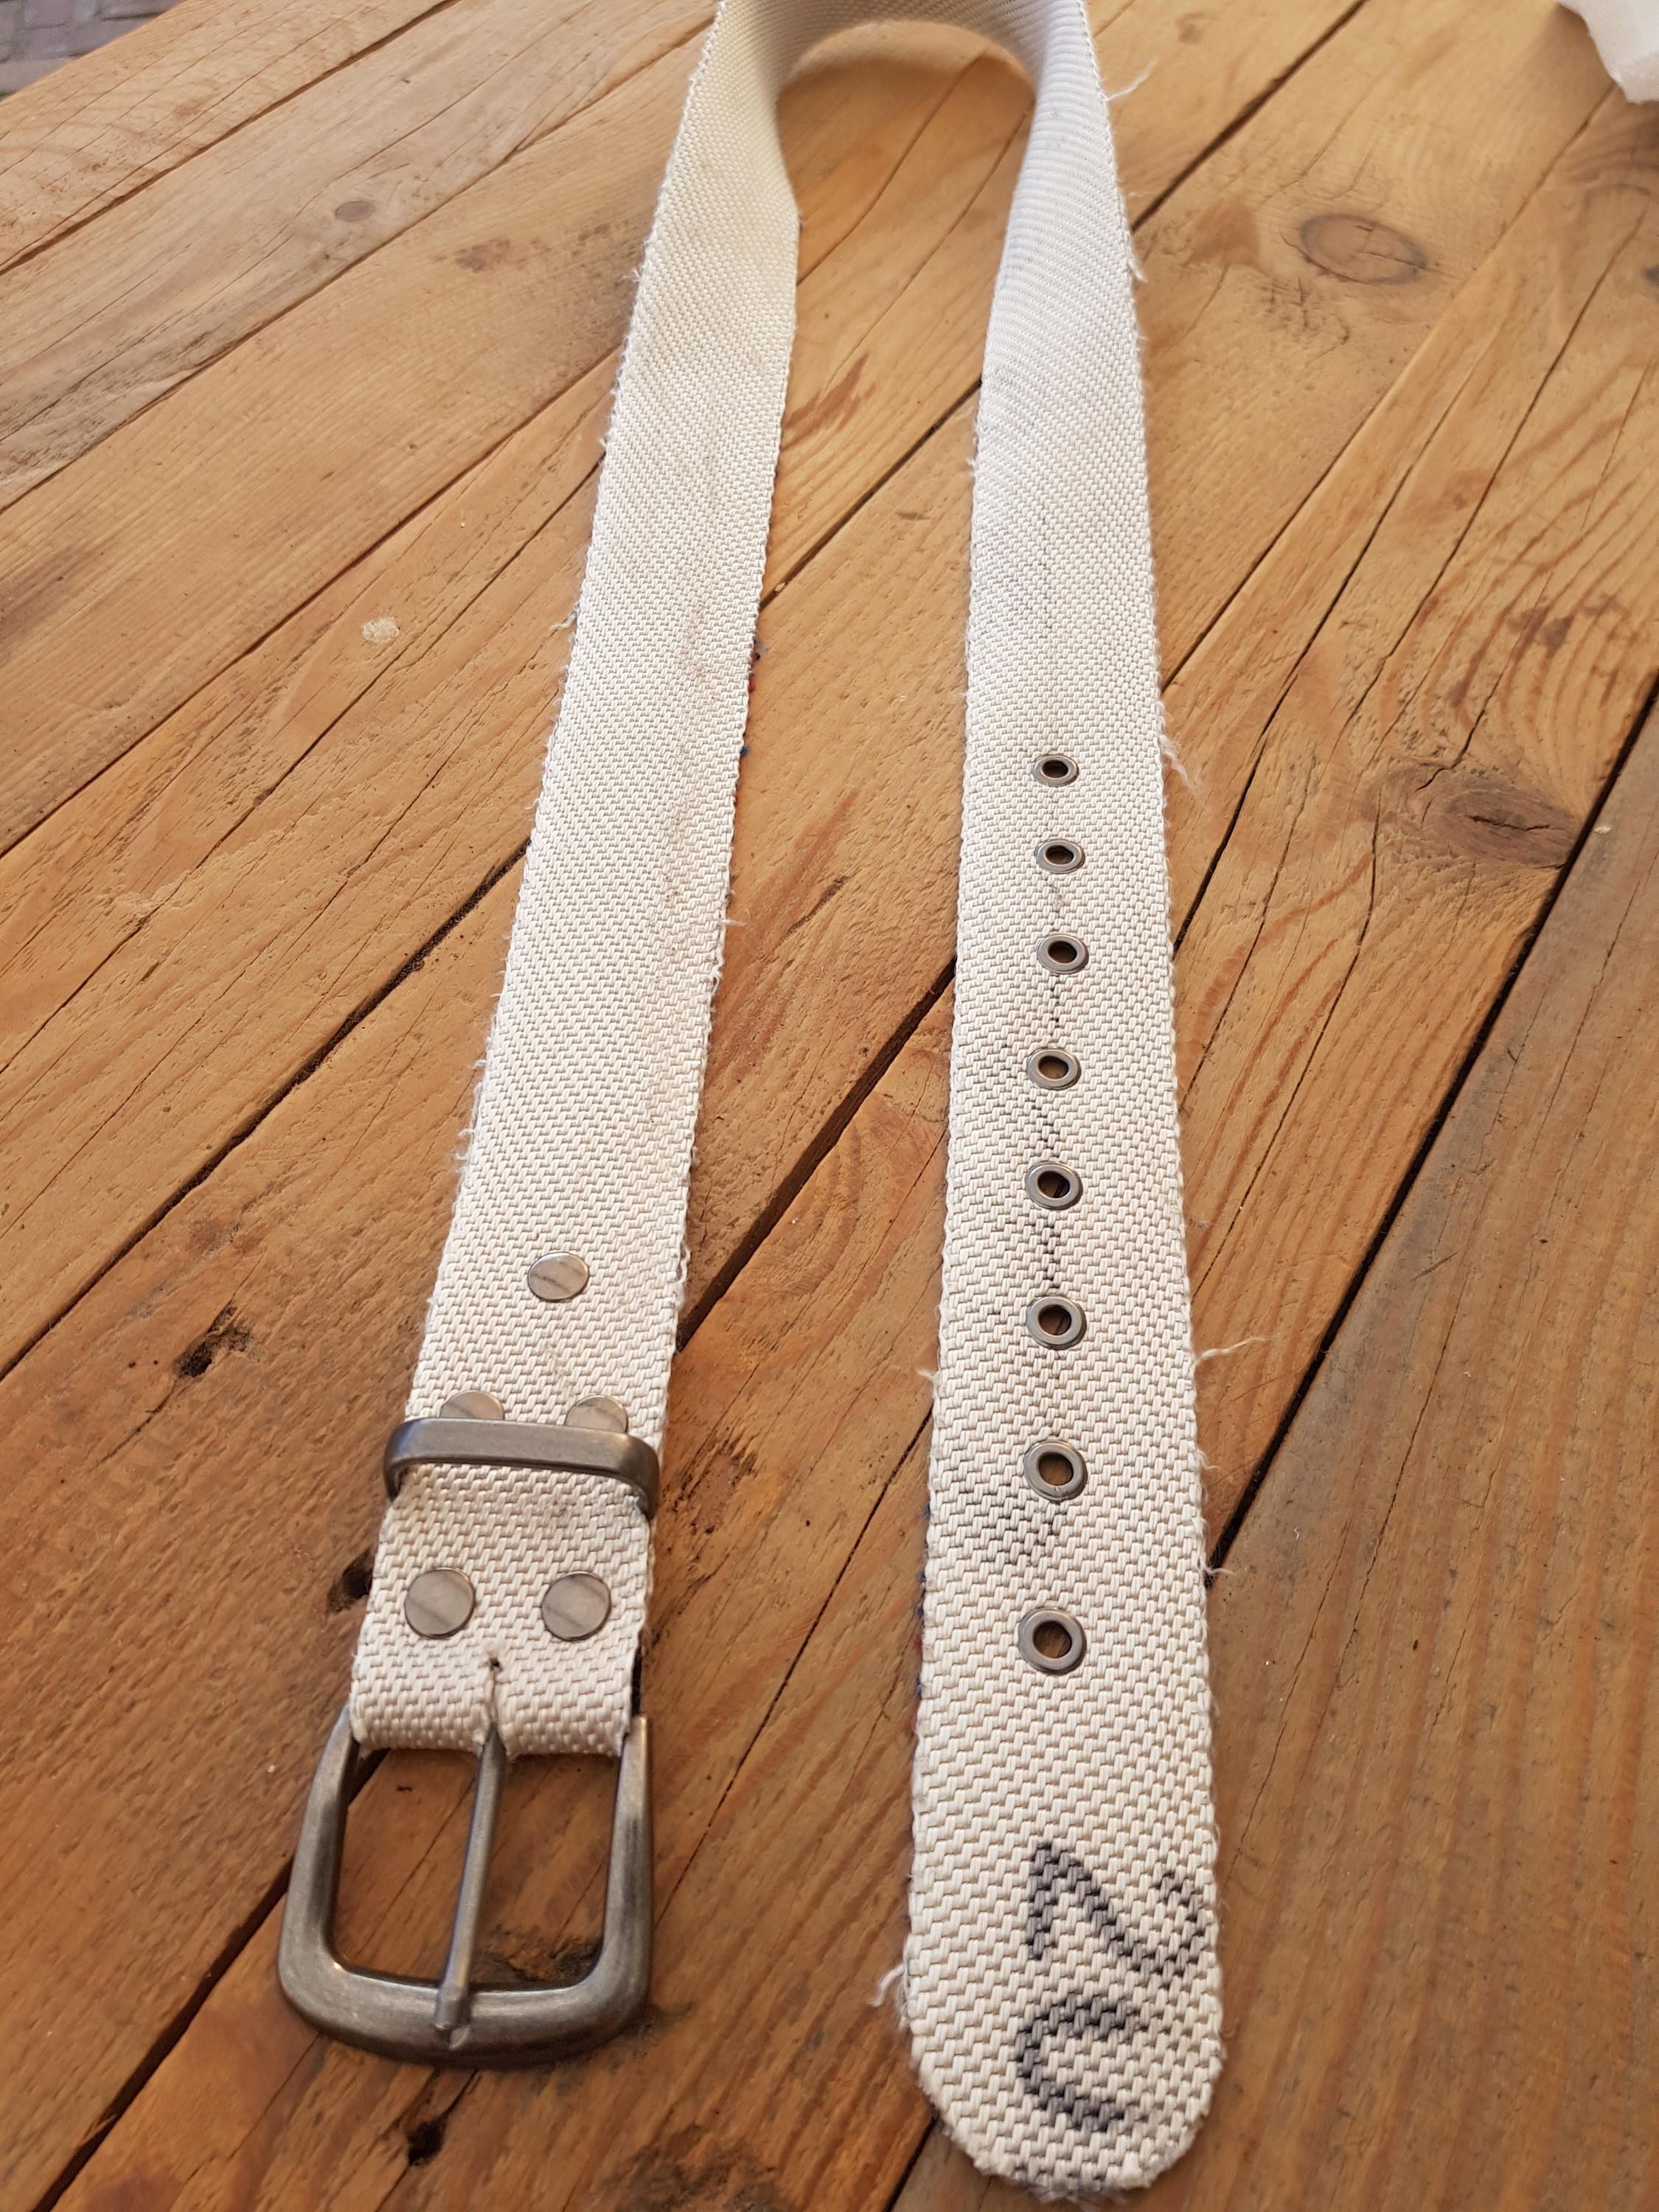 NEW ARRIVAL @MY SHOP  Rough belt made of white firehose. http://etsy.me/2DIVJh6 #accessoires #riem #wit #belt #firefighter #firehose #brandweer #raw #ruig #Feuerwehr